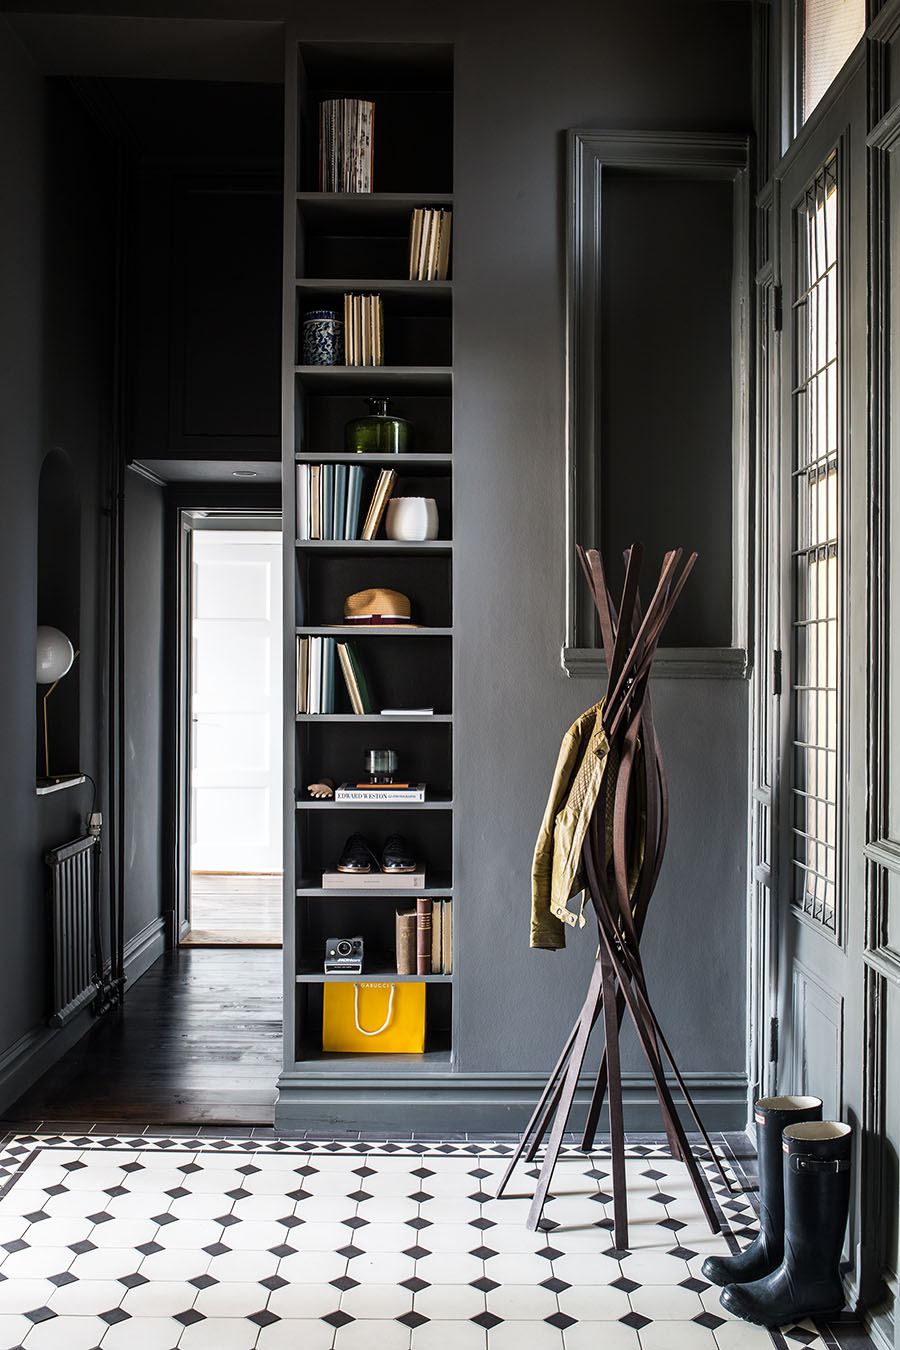 Entry hall, gray painted walls, black and white floor tiles